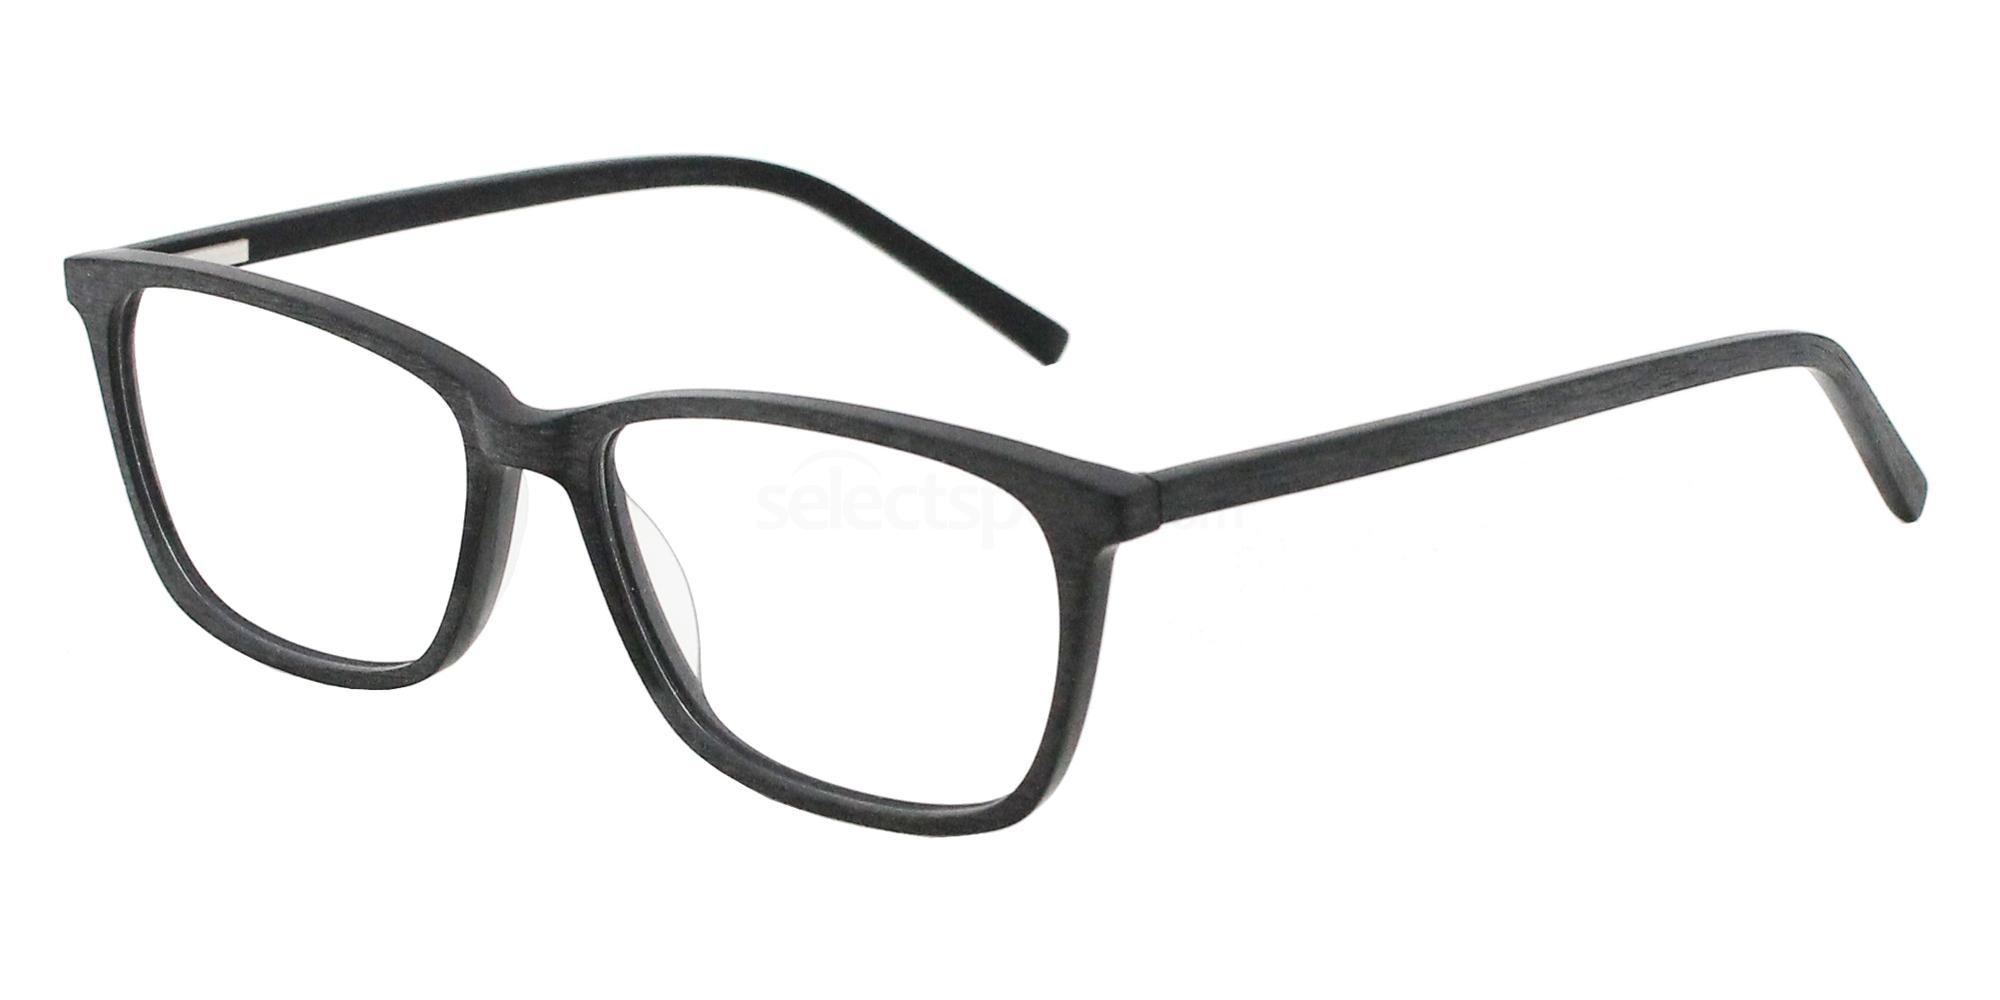 Hygge eyewear for men fashion hipster